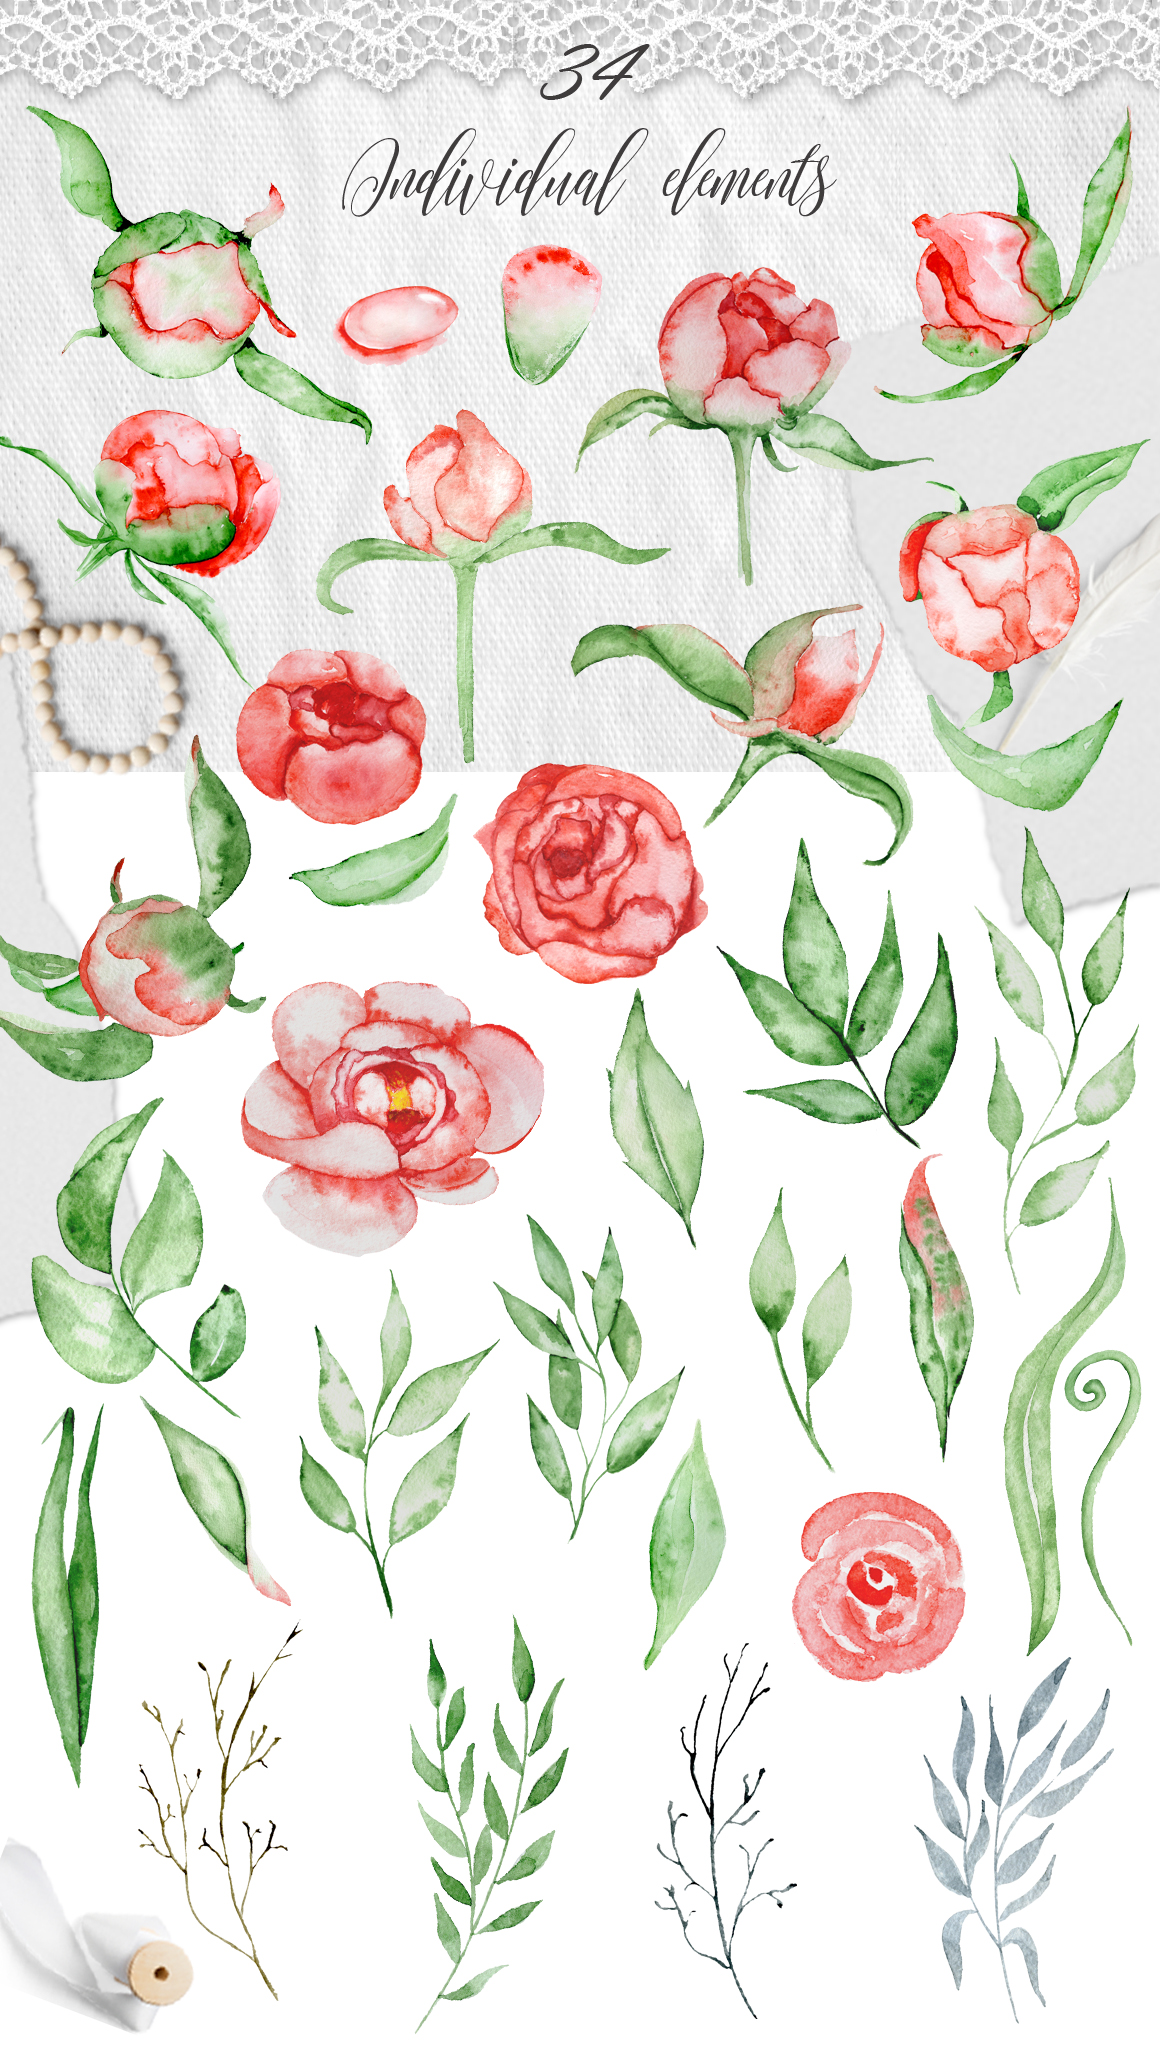 Watercolor peonies romantic floral clipart example image 5